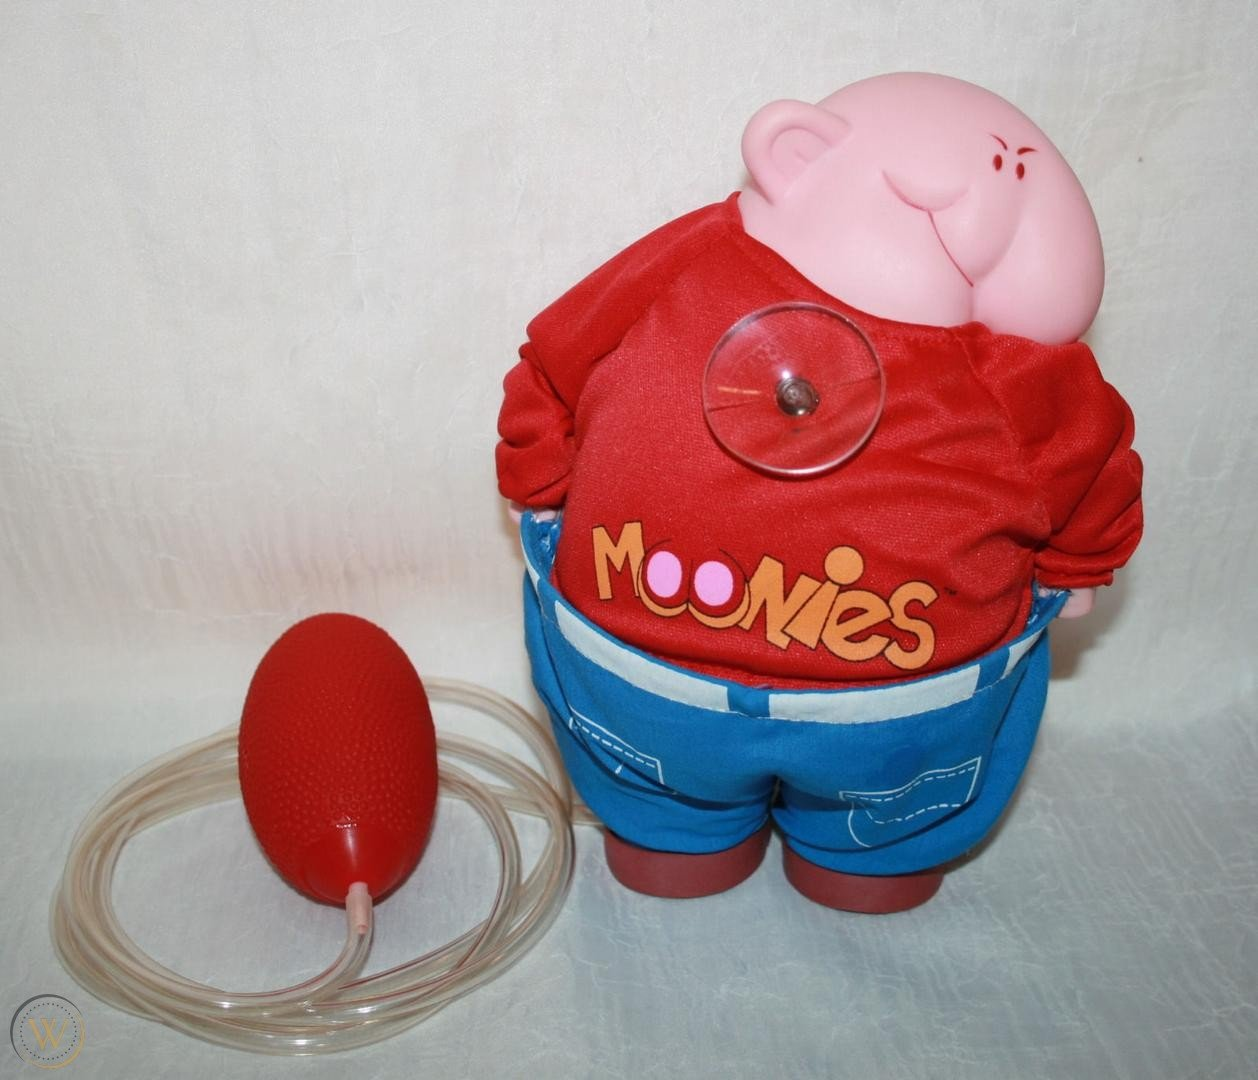 1980s vintage moonies moon man car 1 6c8595c3e777577ae3f1ac9e788a1c34 12 Cool Joke Shop Toys From The 1980s